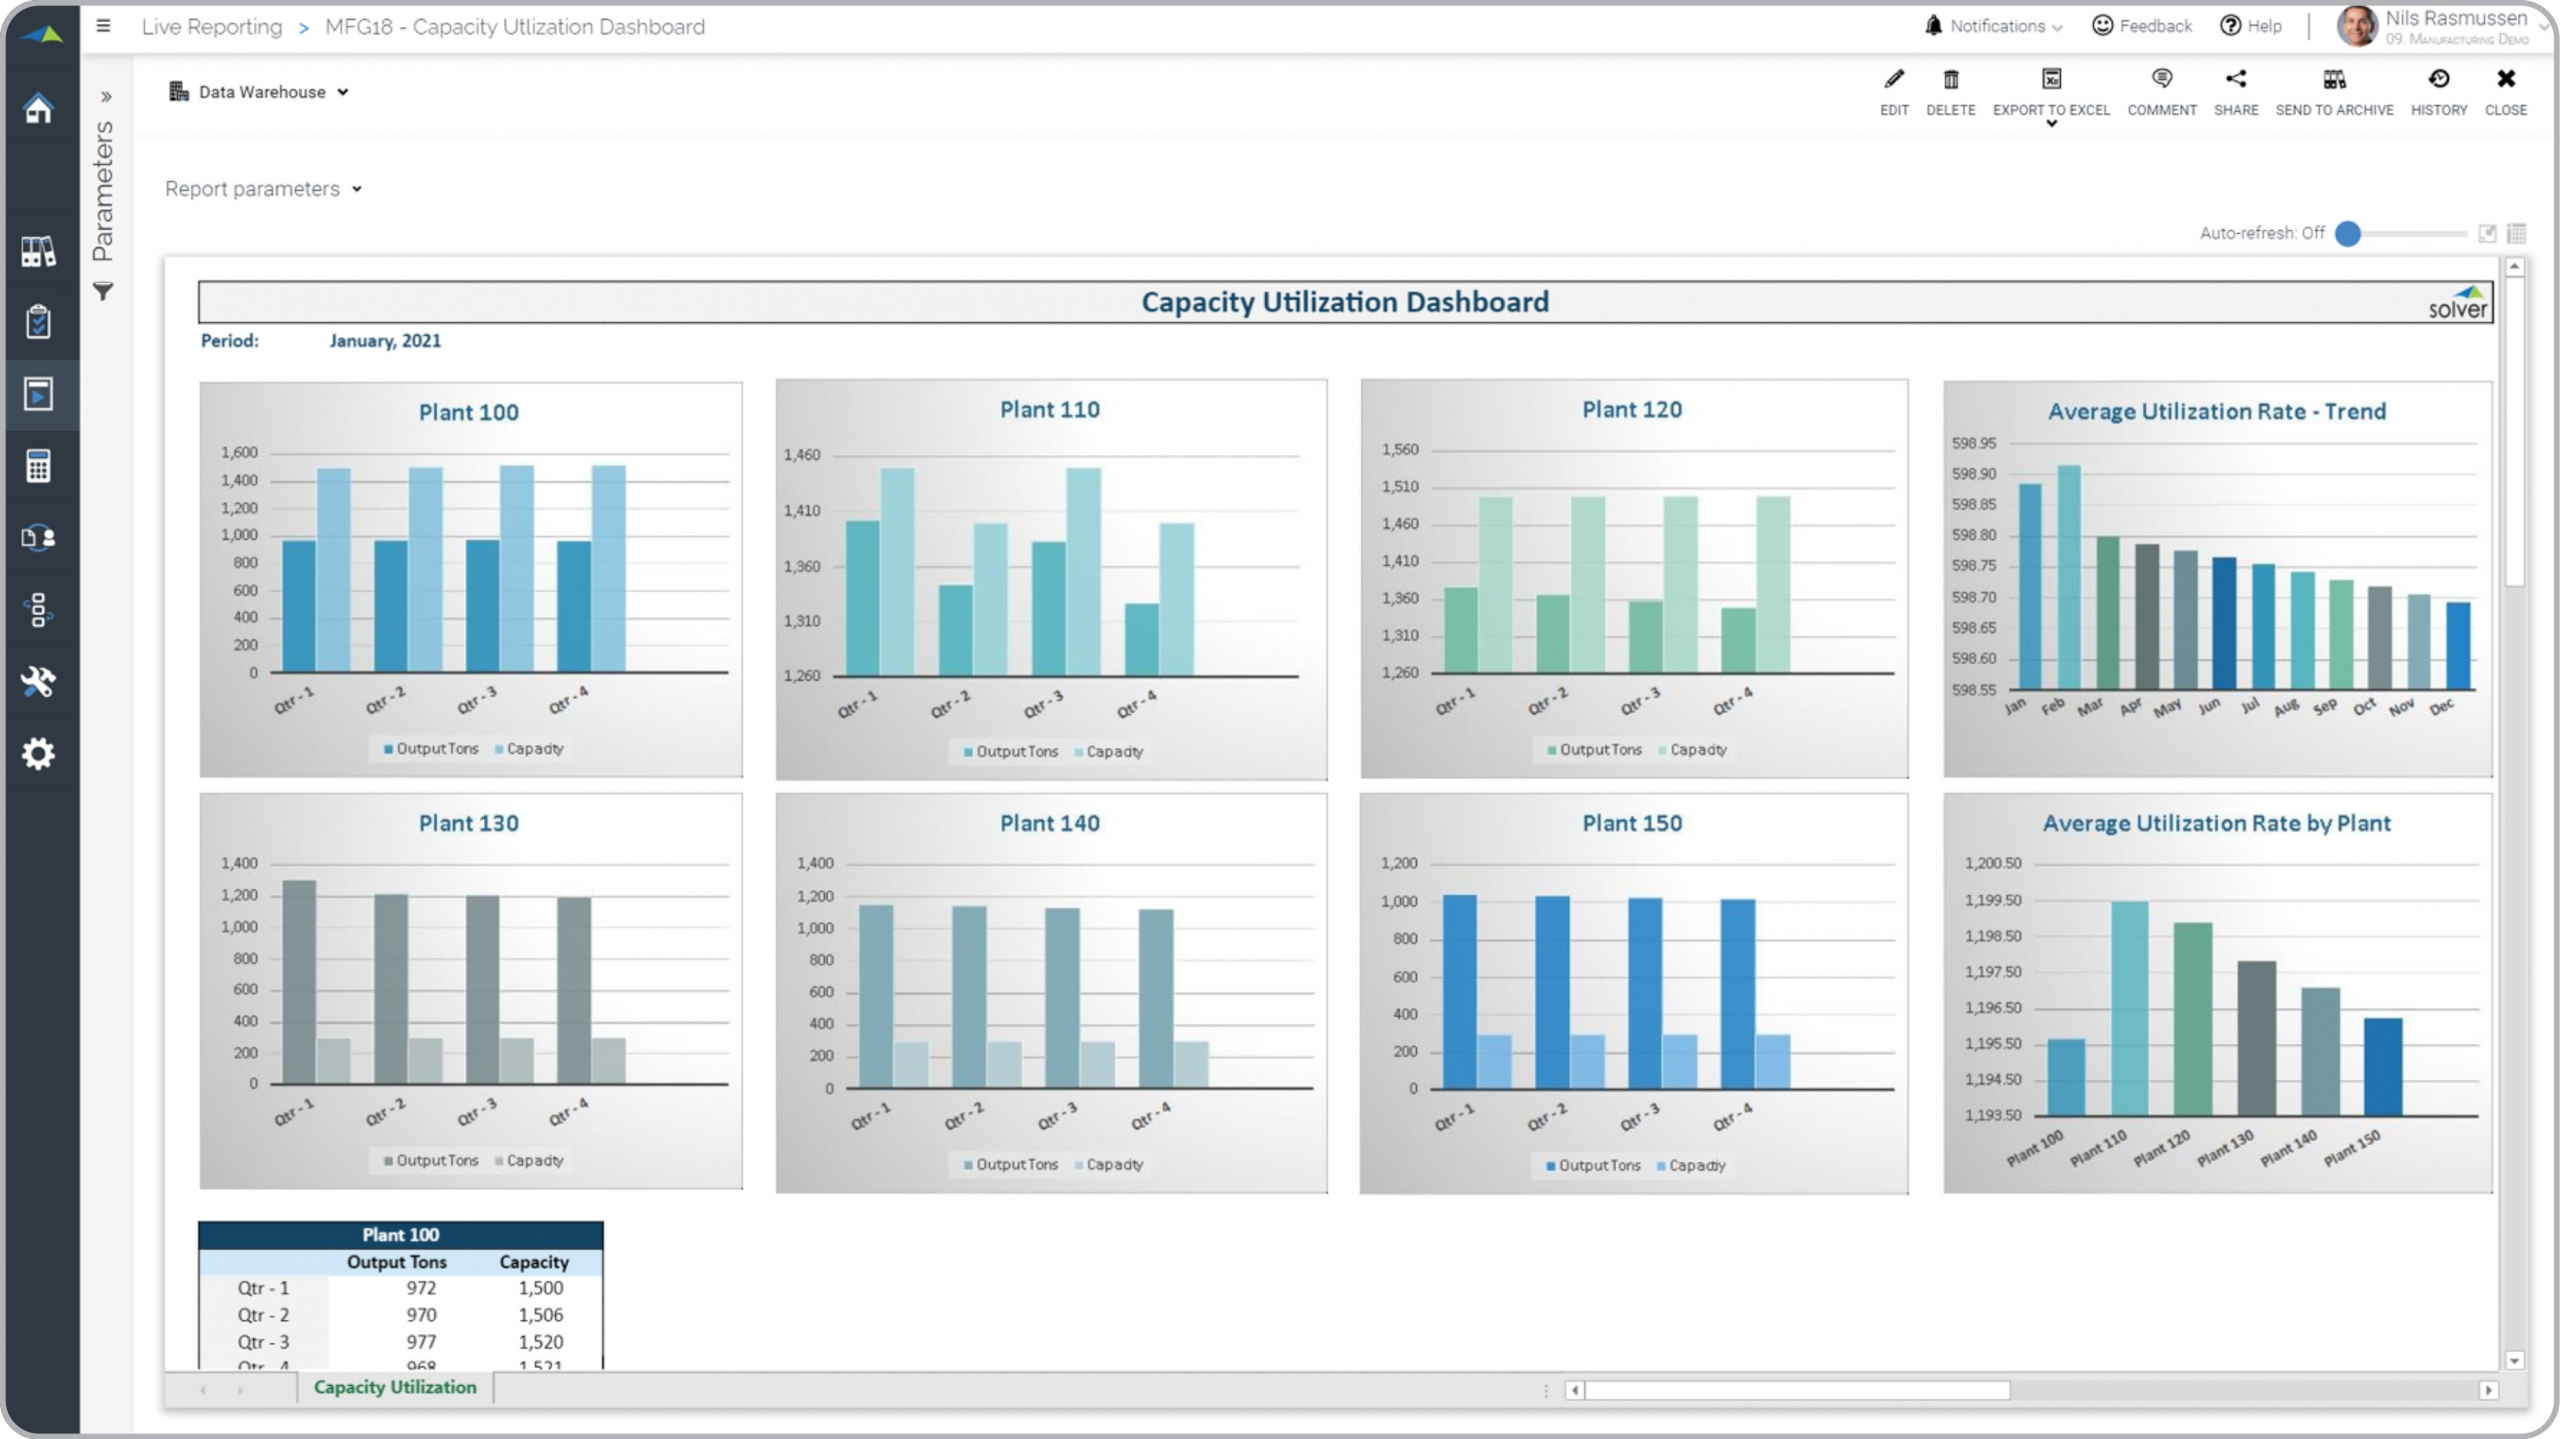 Example of a Capacity Utilization Dashboard with Manufacturing Plant Comparisons